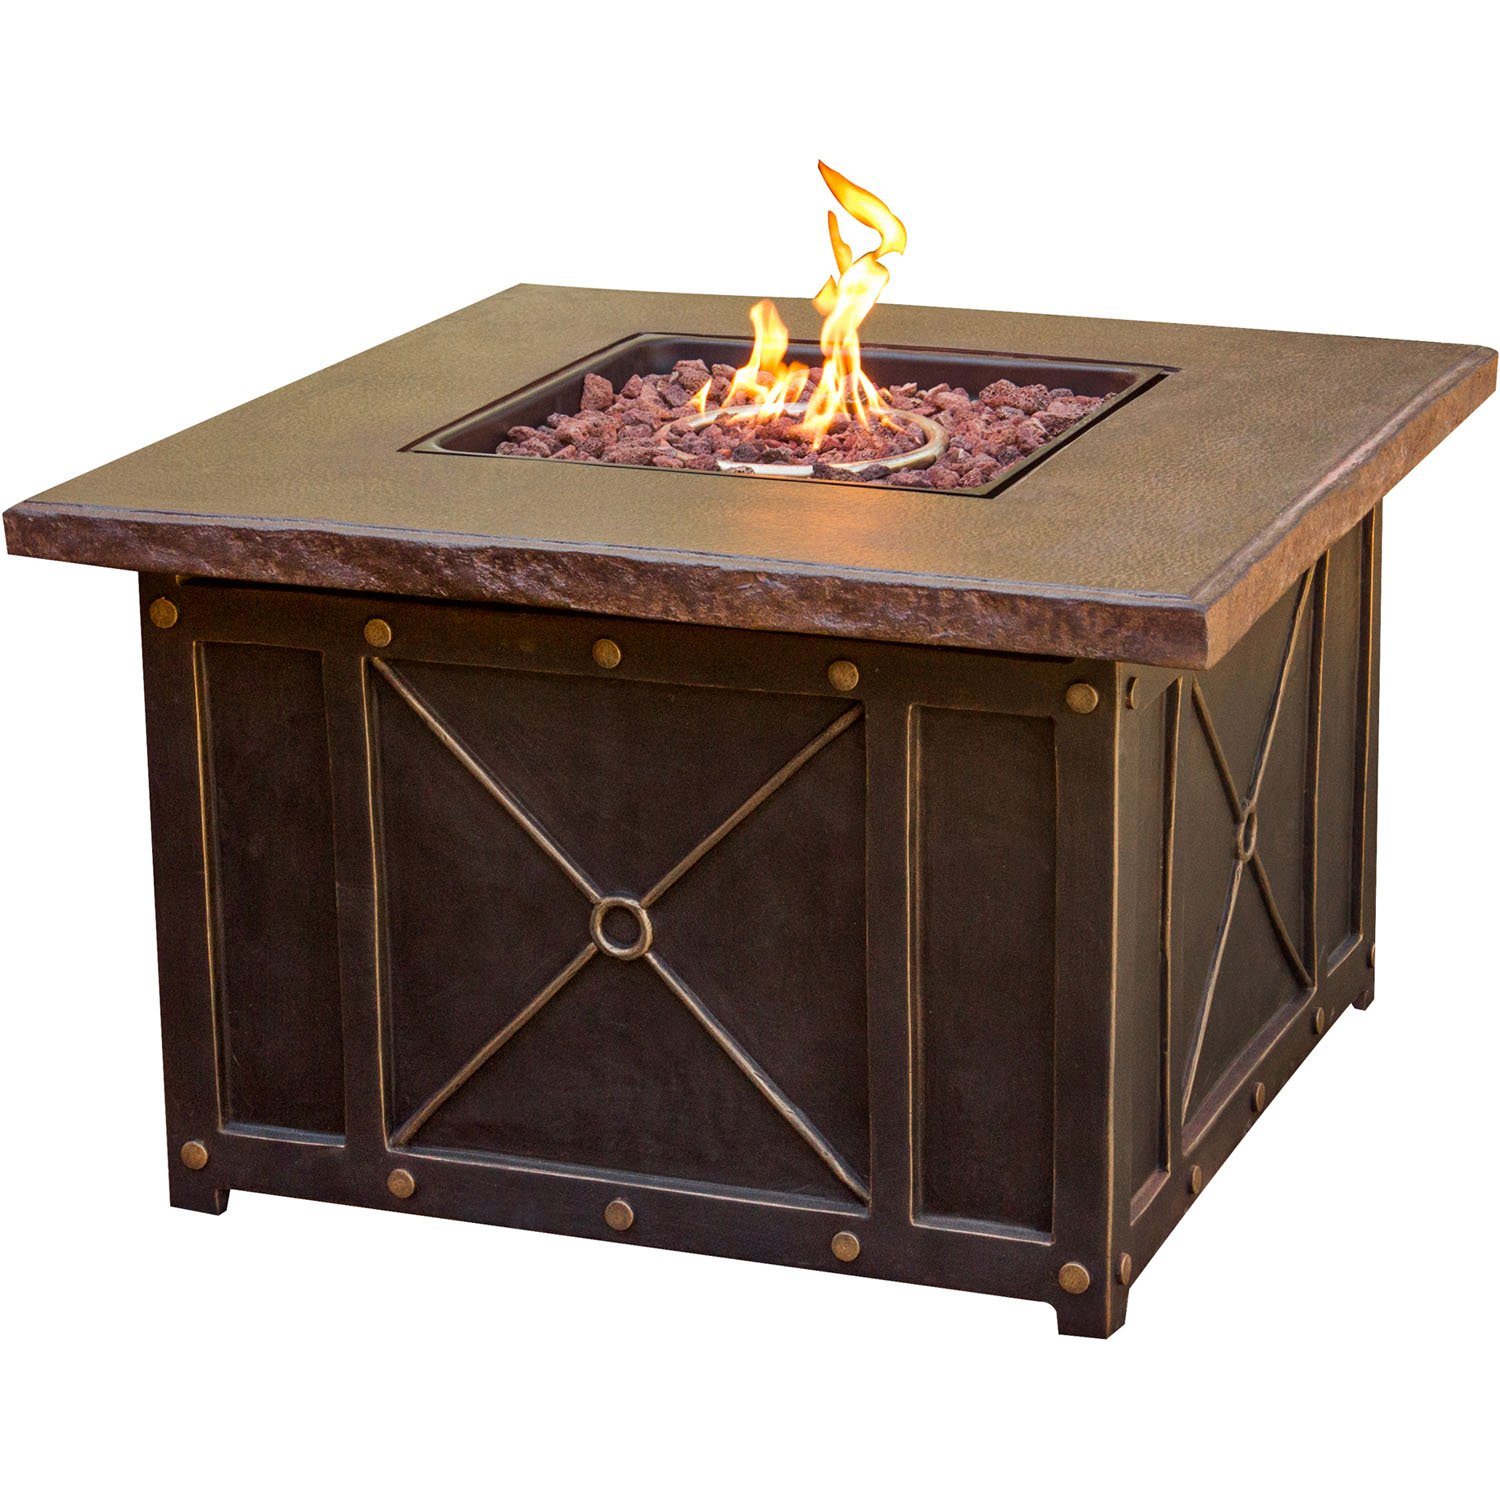 Amazon com cambridge classic1pcfp square gas fire pit with durastone top 40 garden outdoor